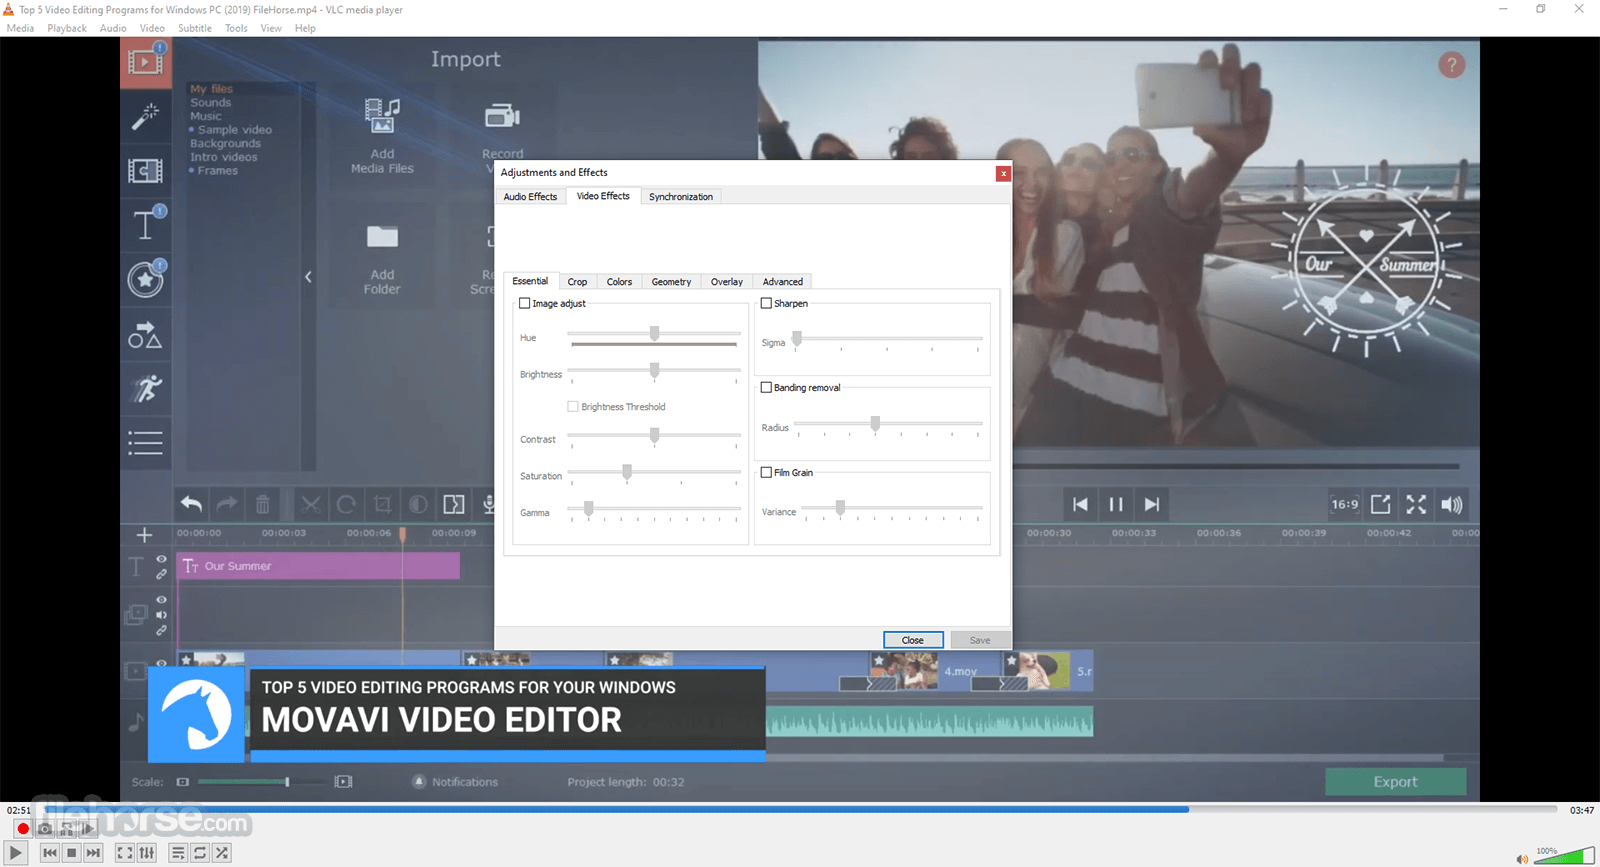 vlc media player v 1.1.11 softonic